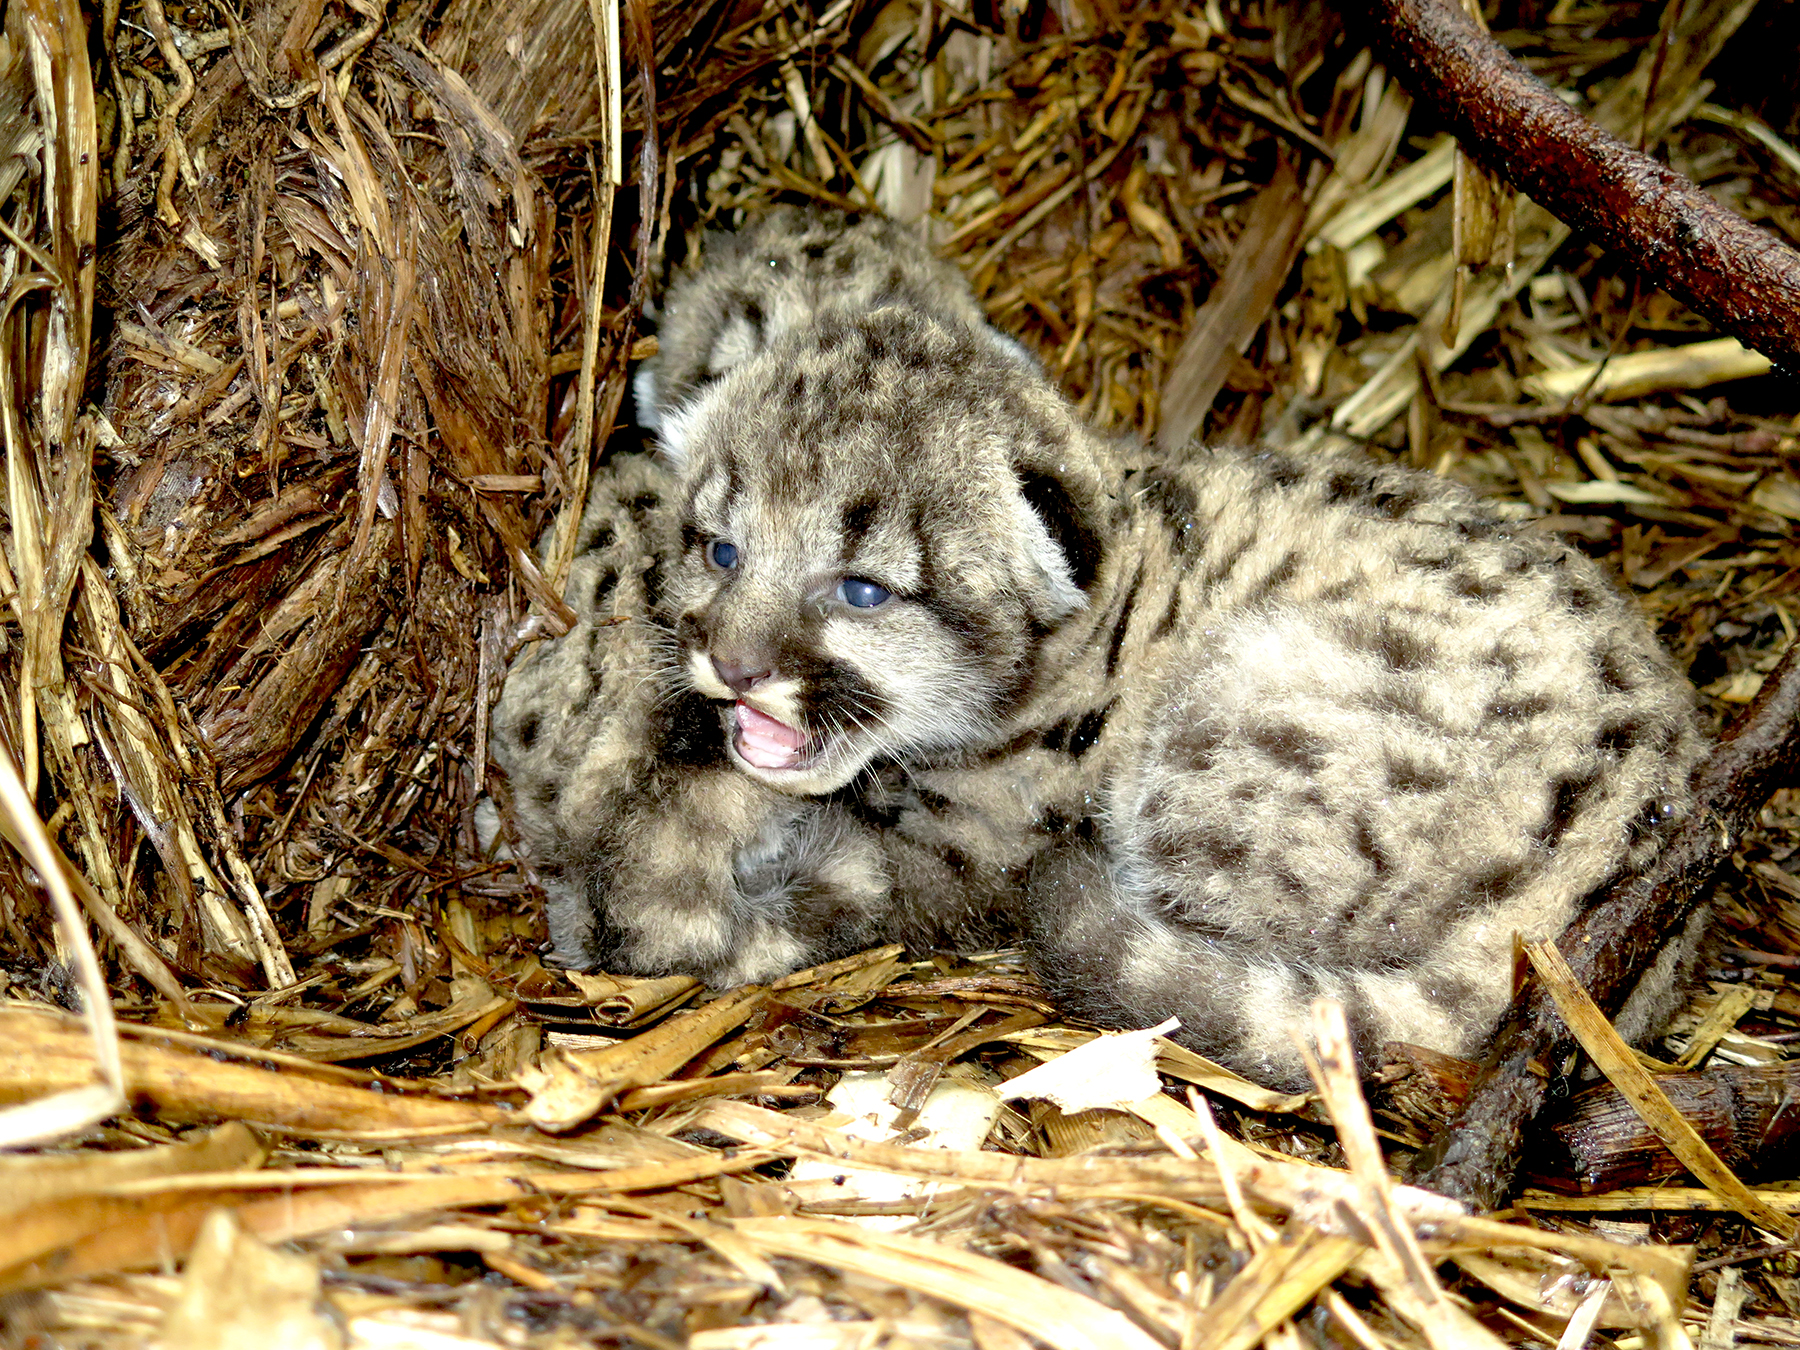 10-day-old mountain lion kittens - copyright Audubon Canyon Ranch egret.org